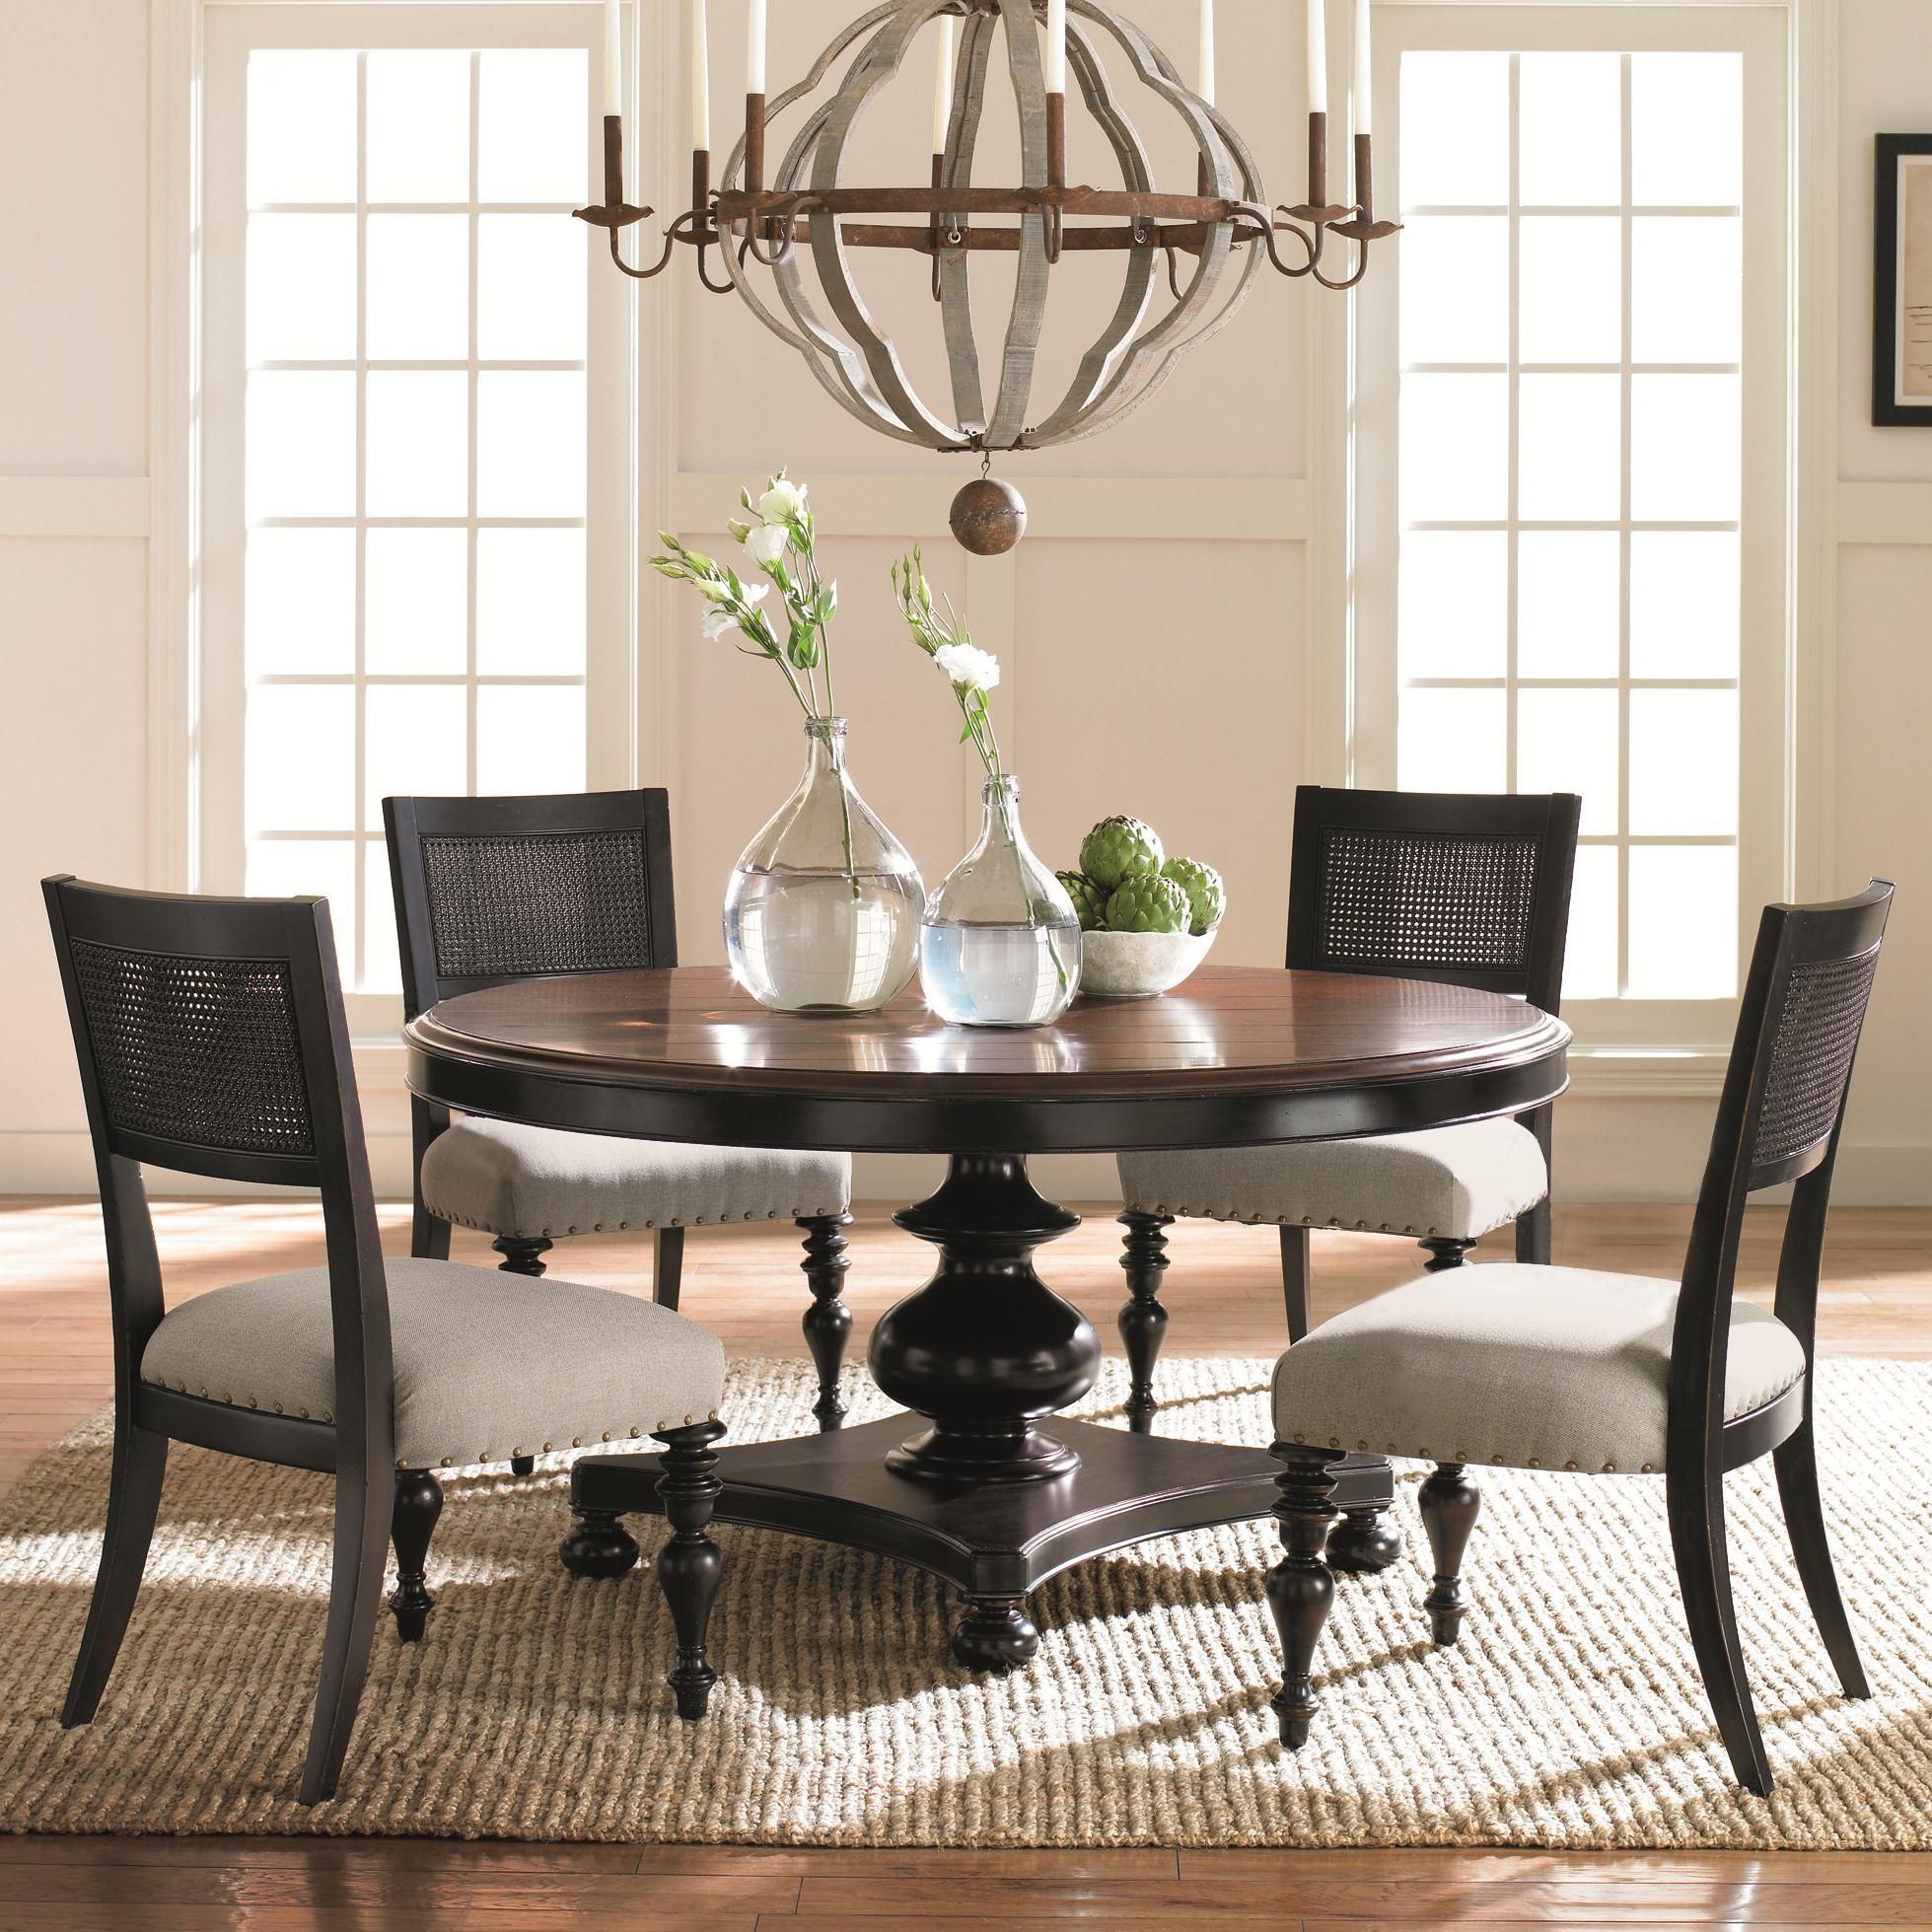 Home interior catalog american kaleidoscope pedestal table and cane back chair set by